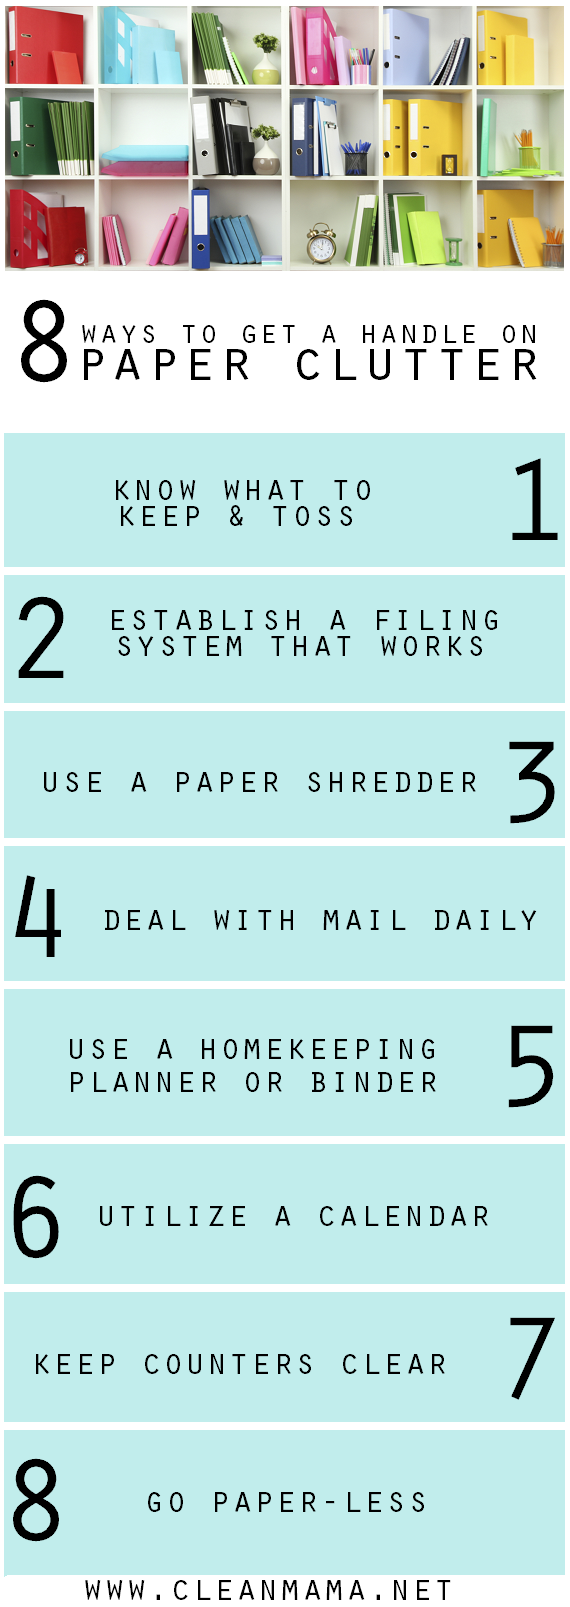 Eliminate even more paper clutter by following the suggestions on this chart.